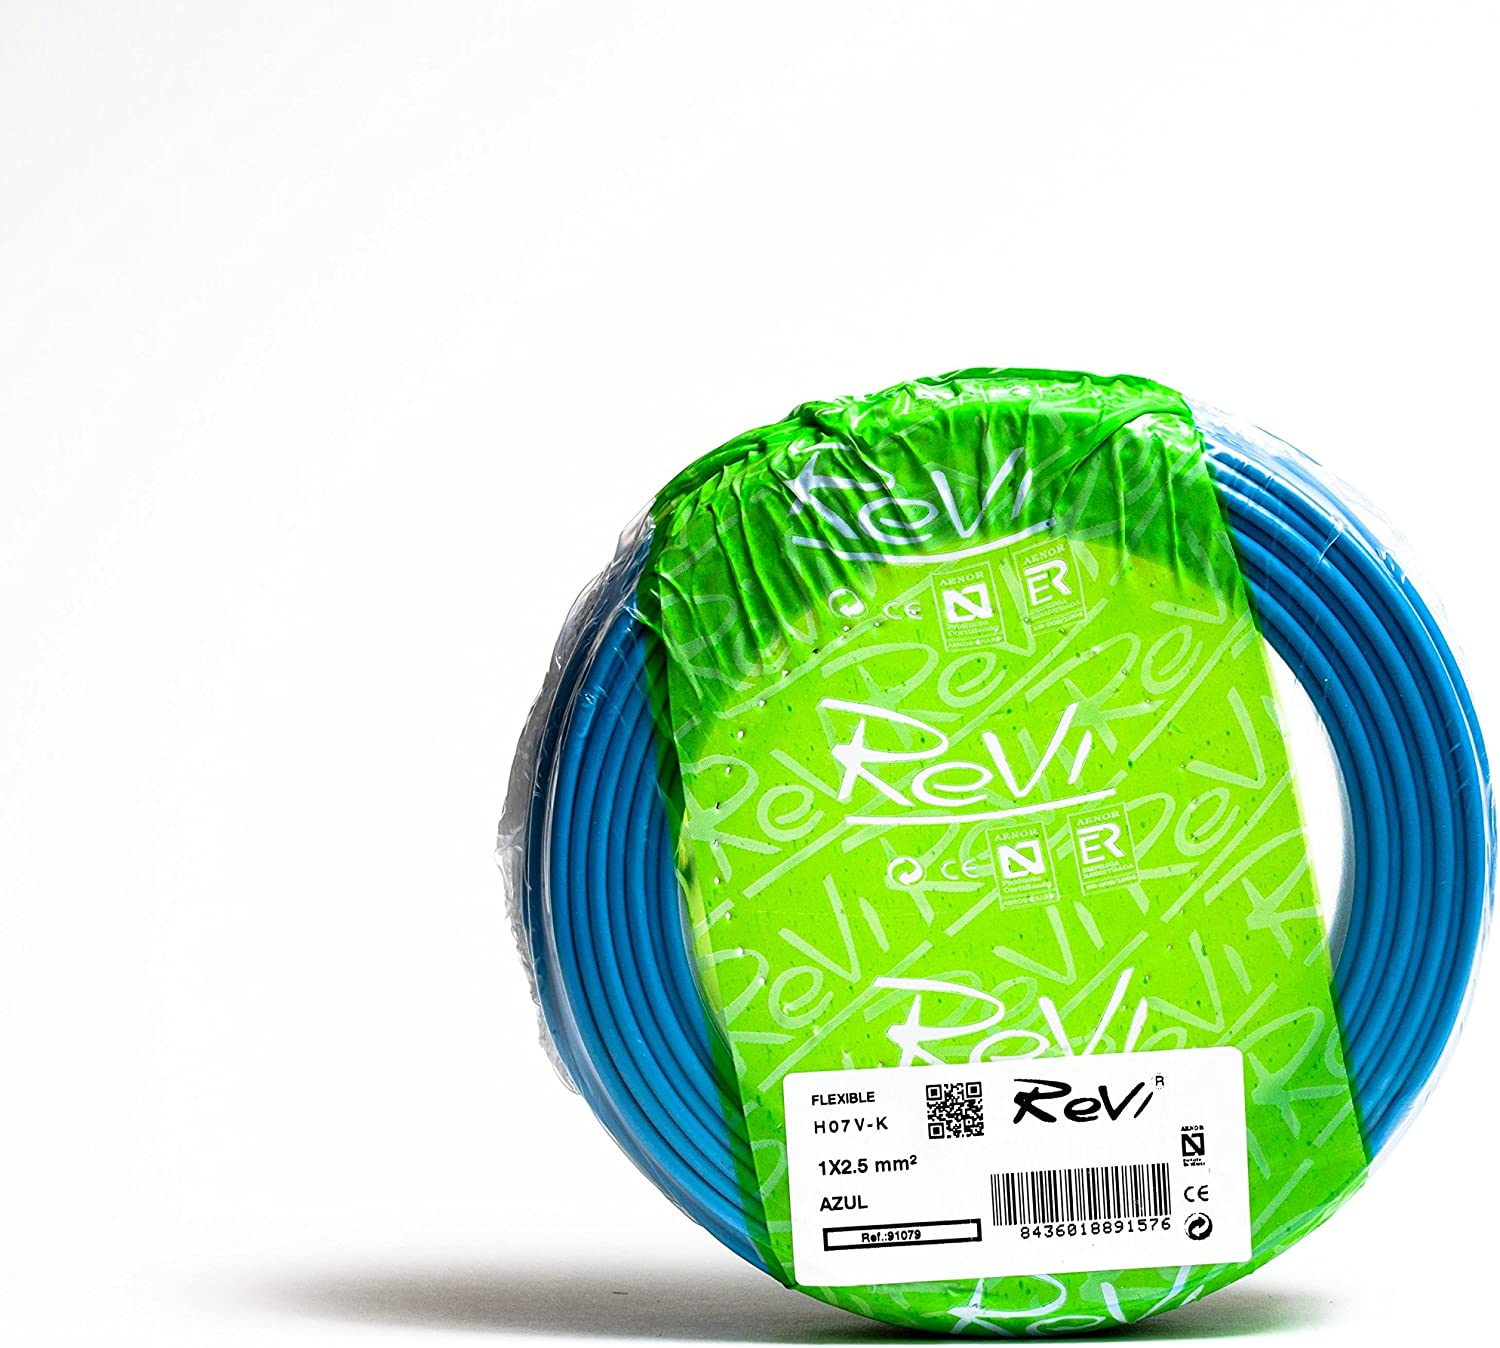 Cable FLEXIBLE H07V-K 1 x 2,5 mm² 50 m (Azul)